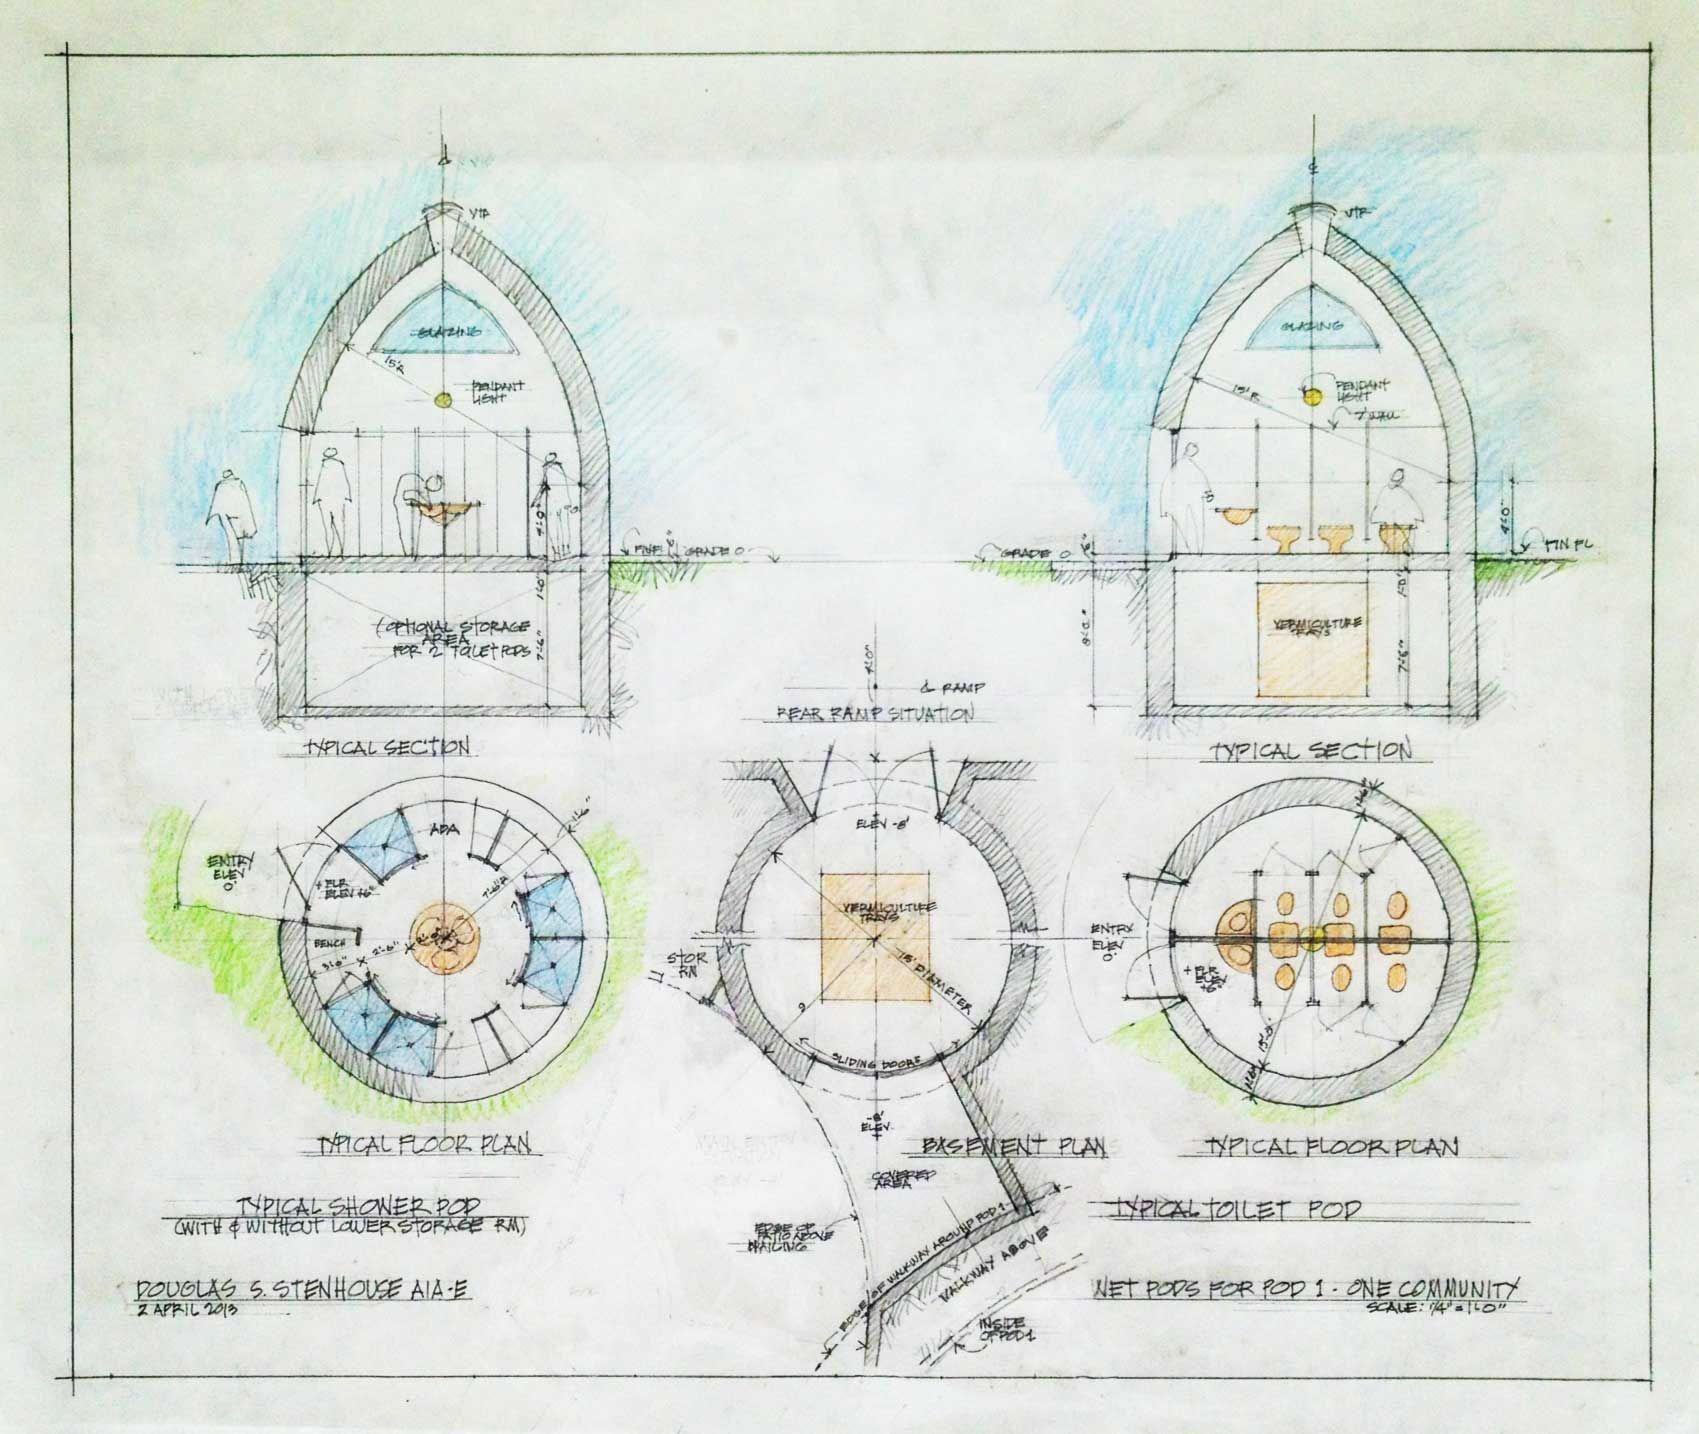 Basic Dome Home S Interior Plans: Open Source DIY Eco-toilets And Showers For Personal And